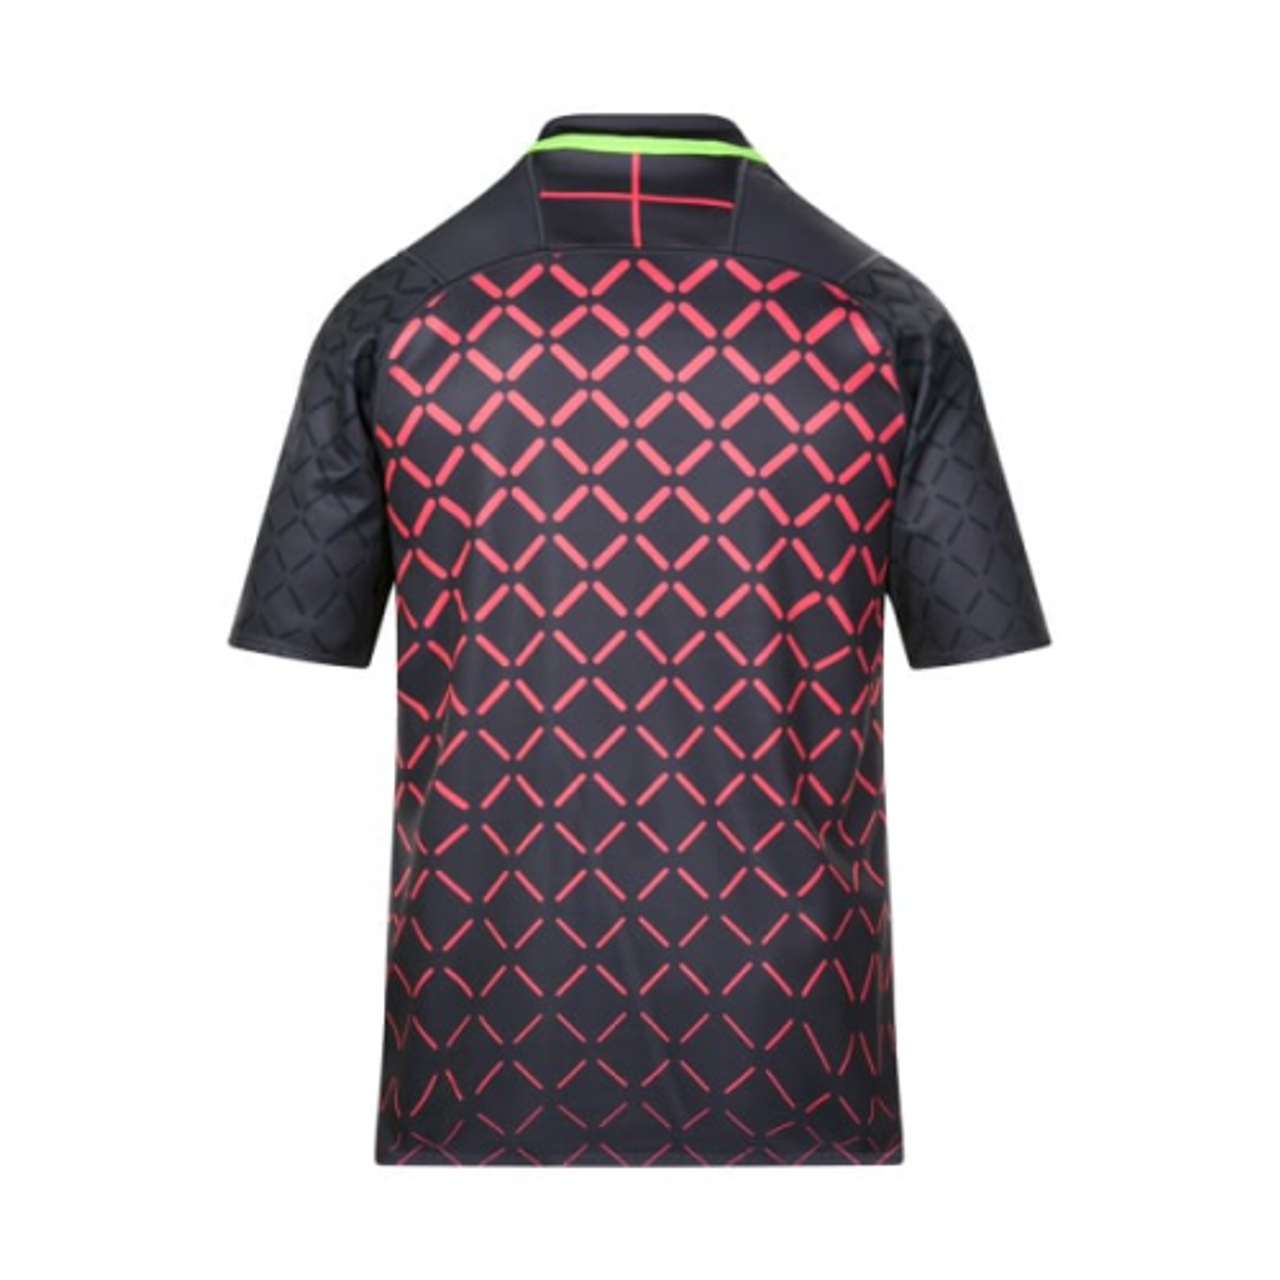 CCC England 7s Alternate Jersey